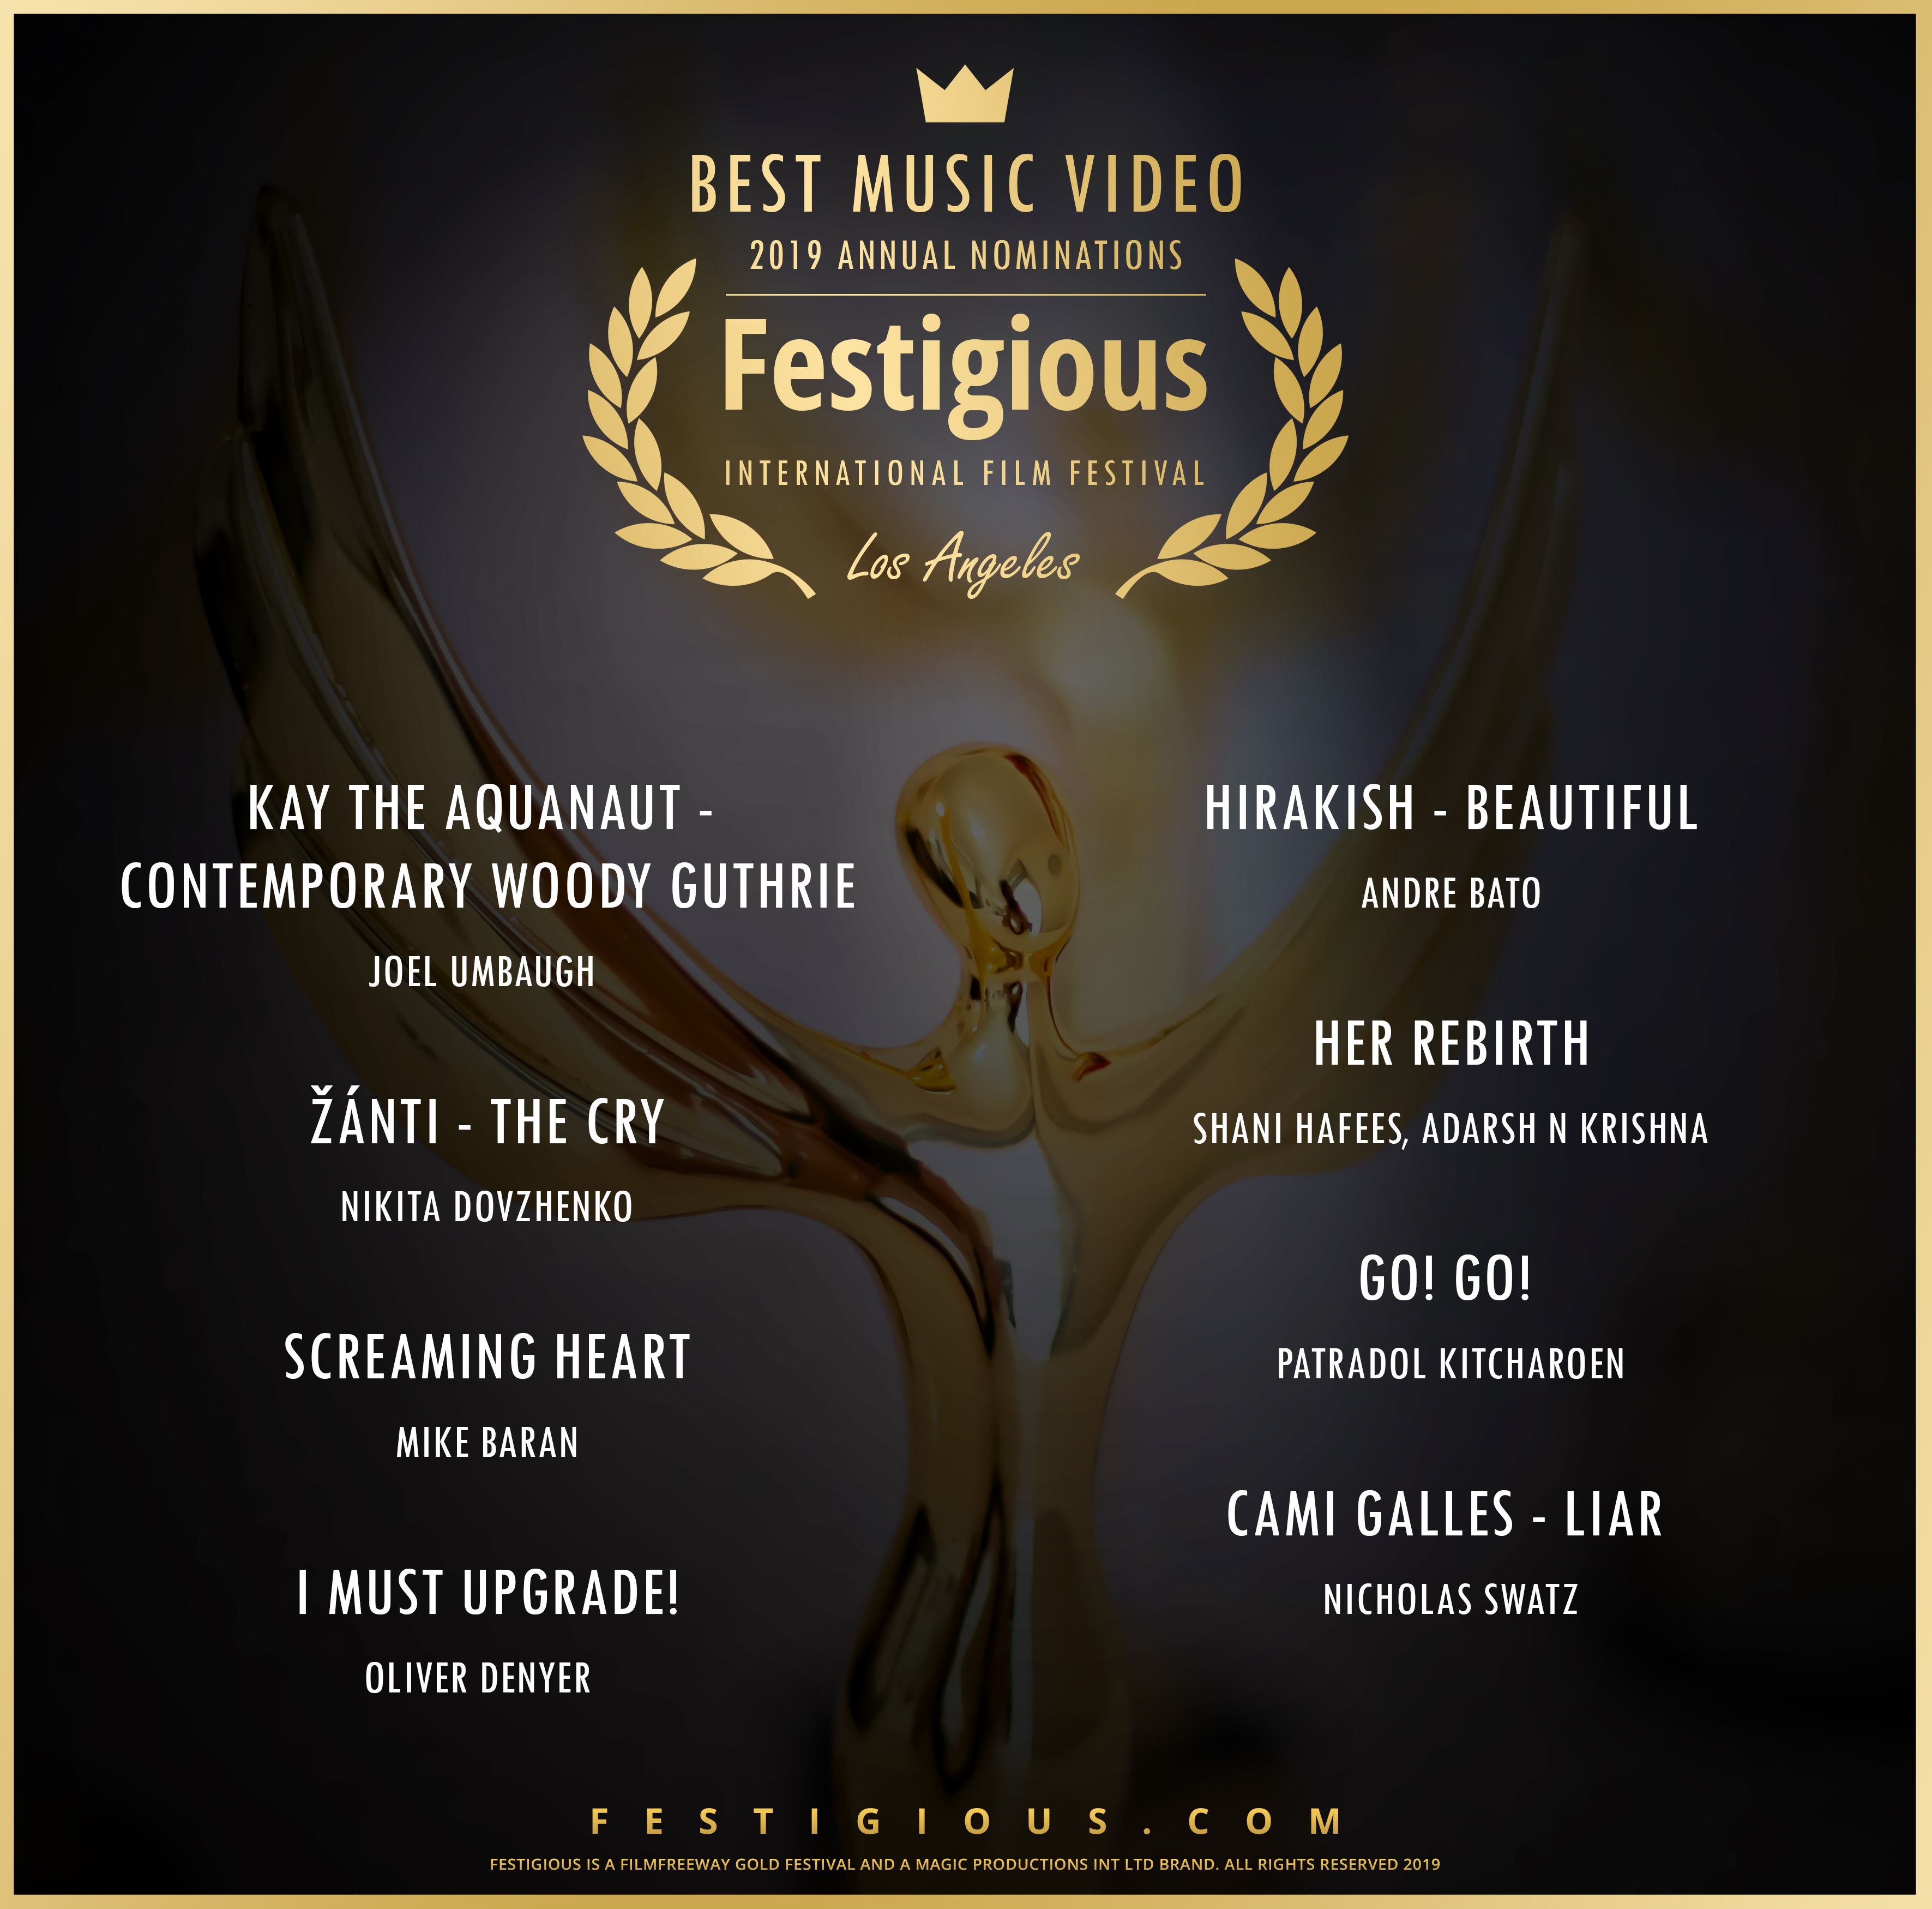 Festigious Best Music Video